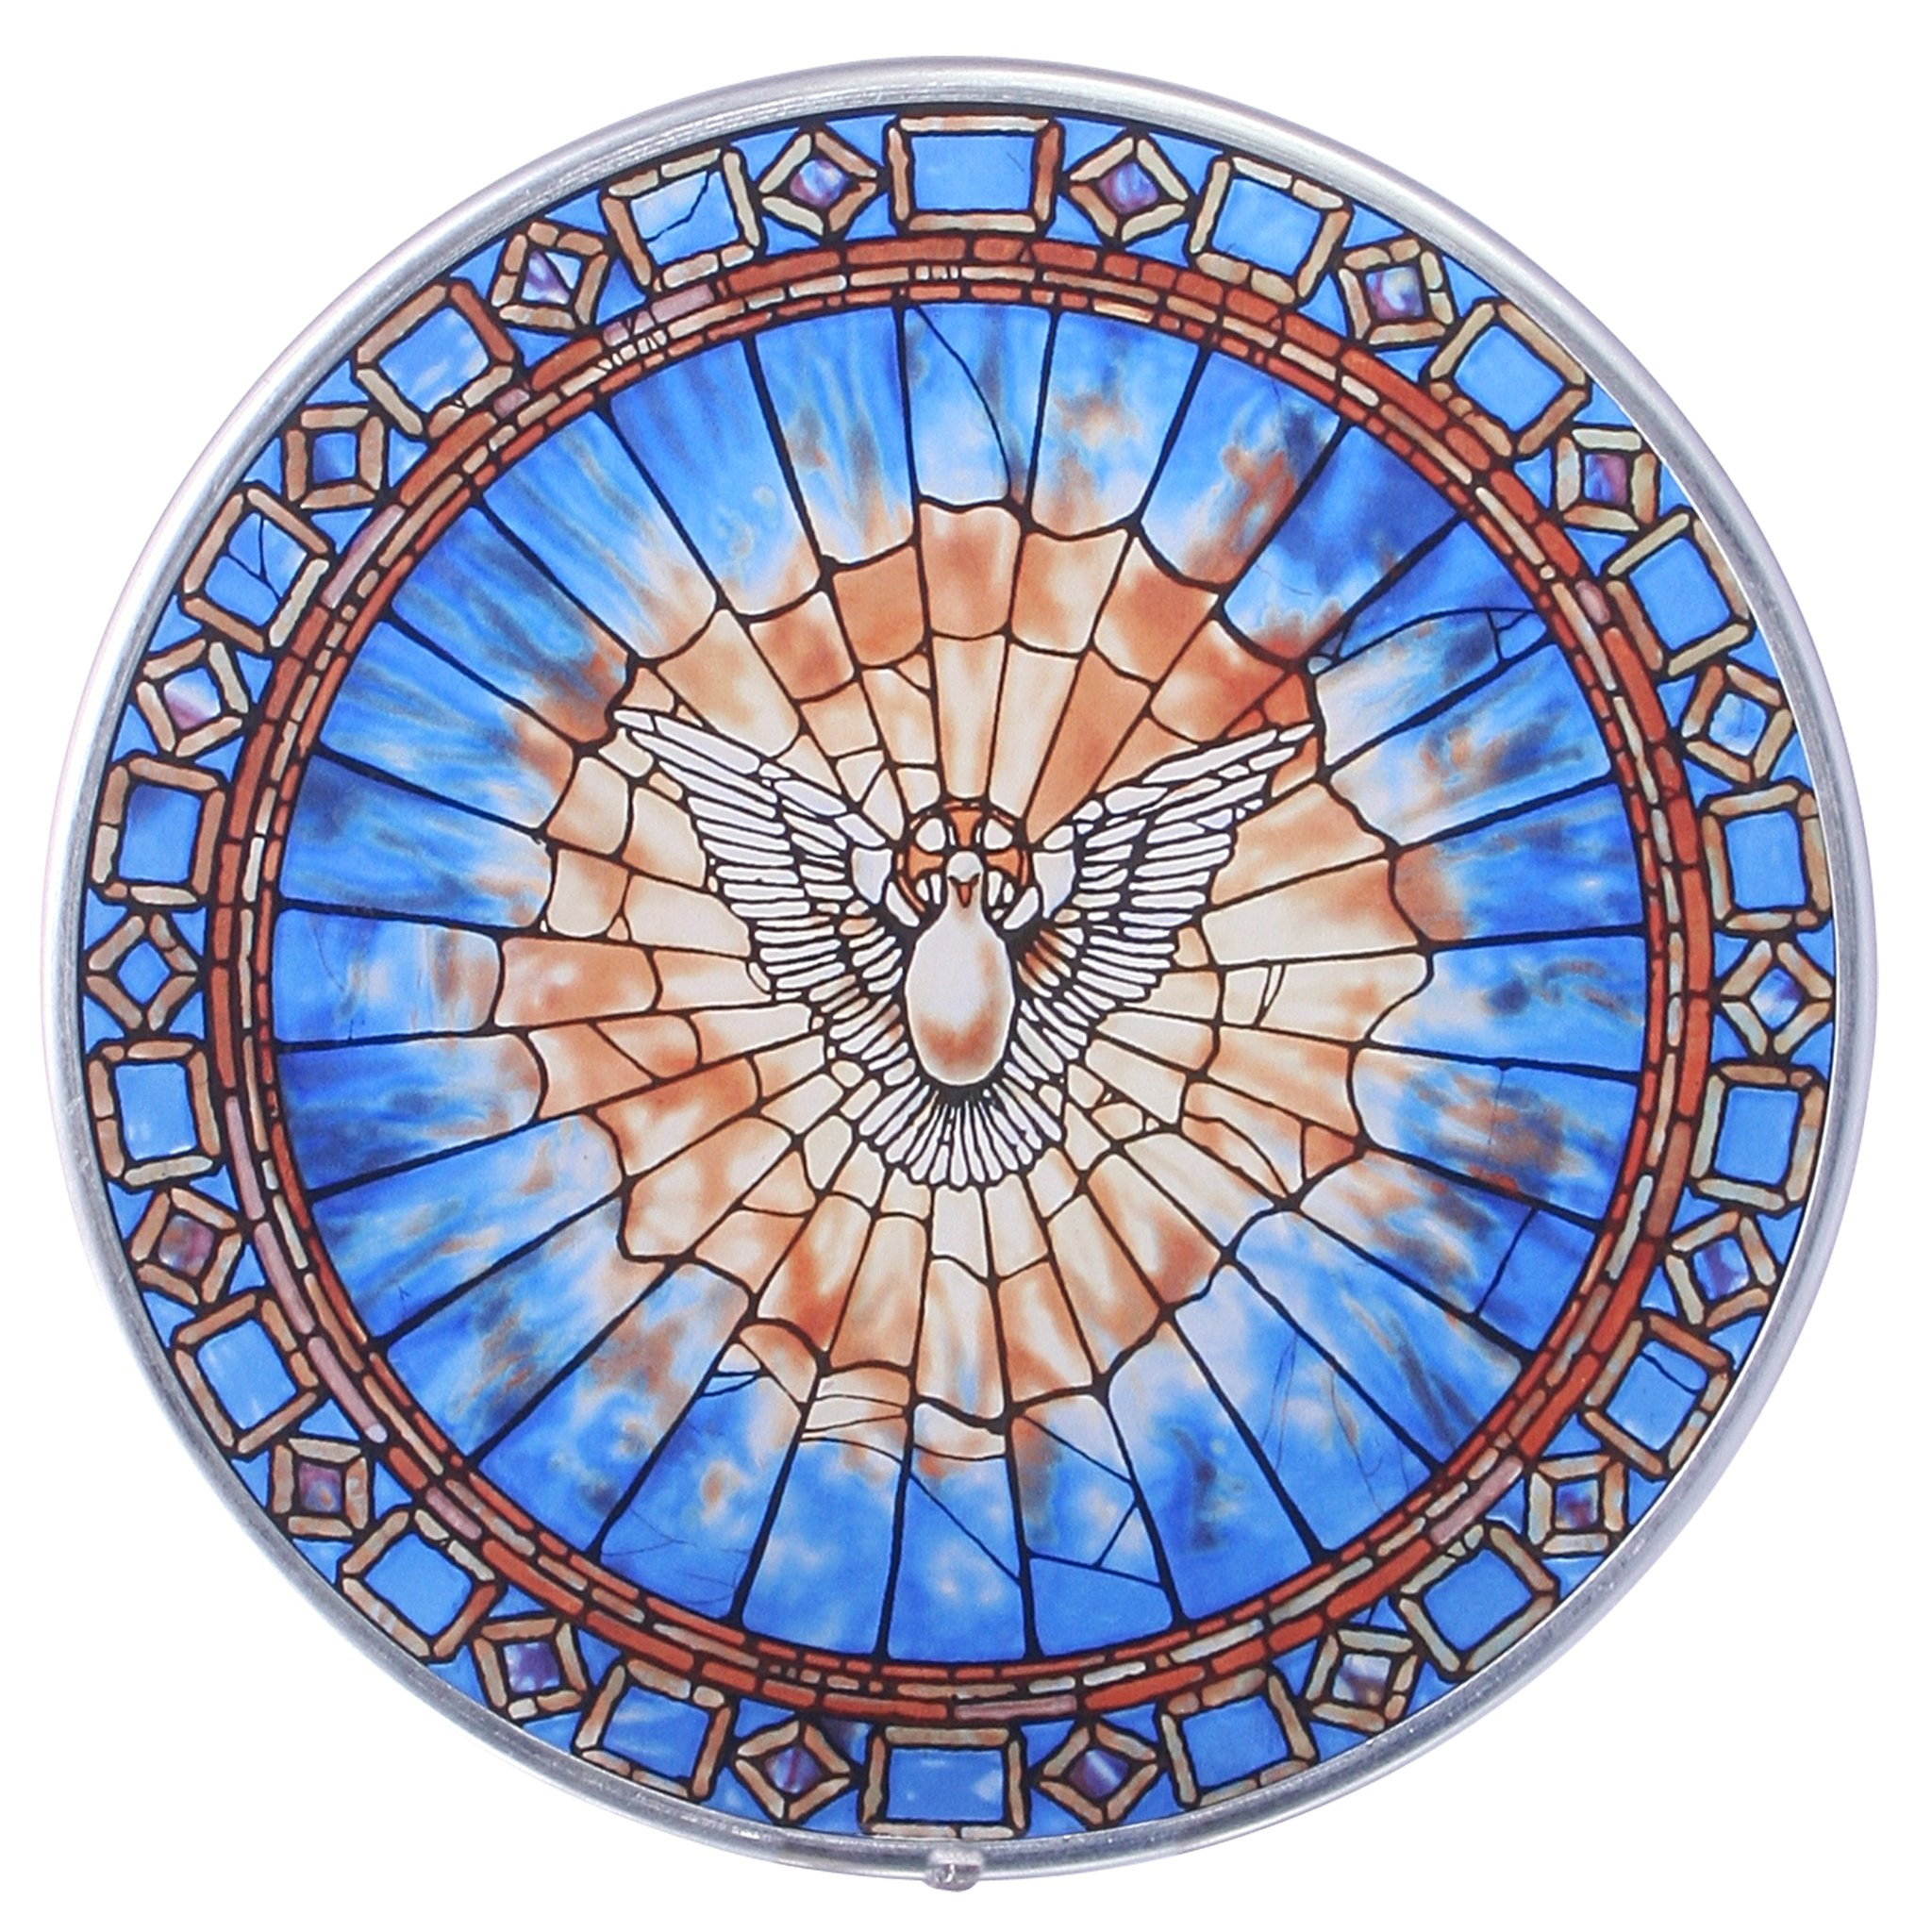 Design Toscano Stained Glass Panel - The Holy Spirit Round Stained Glass Window Hangings - Art Glass Window Treatments